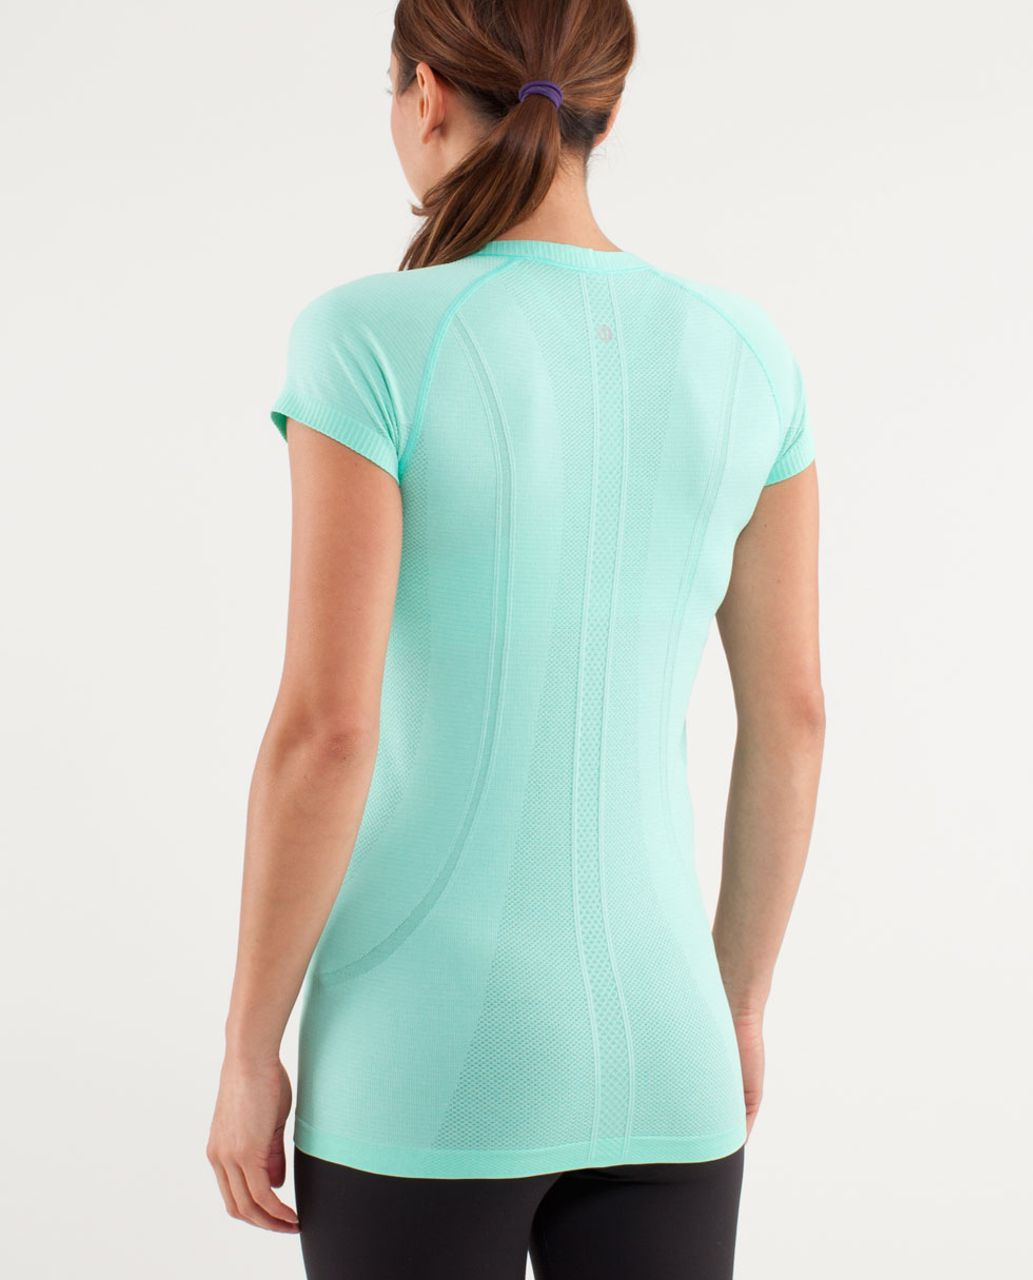 Lululemon Run:  Swiftly Tech Short Sleeve - Menthol